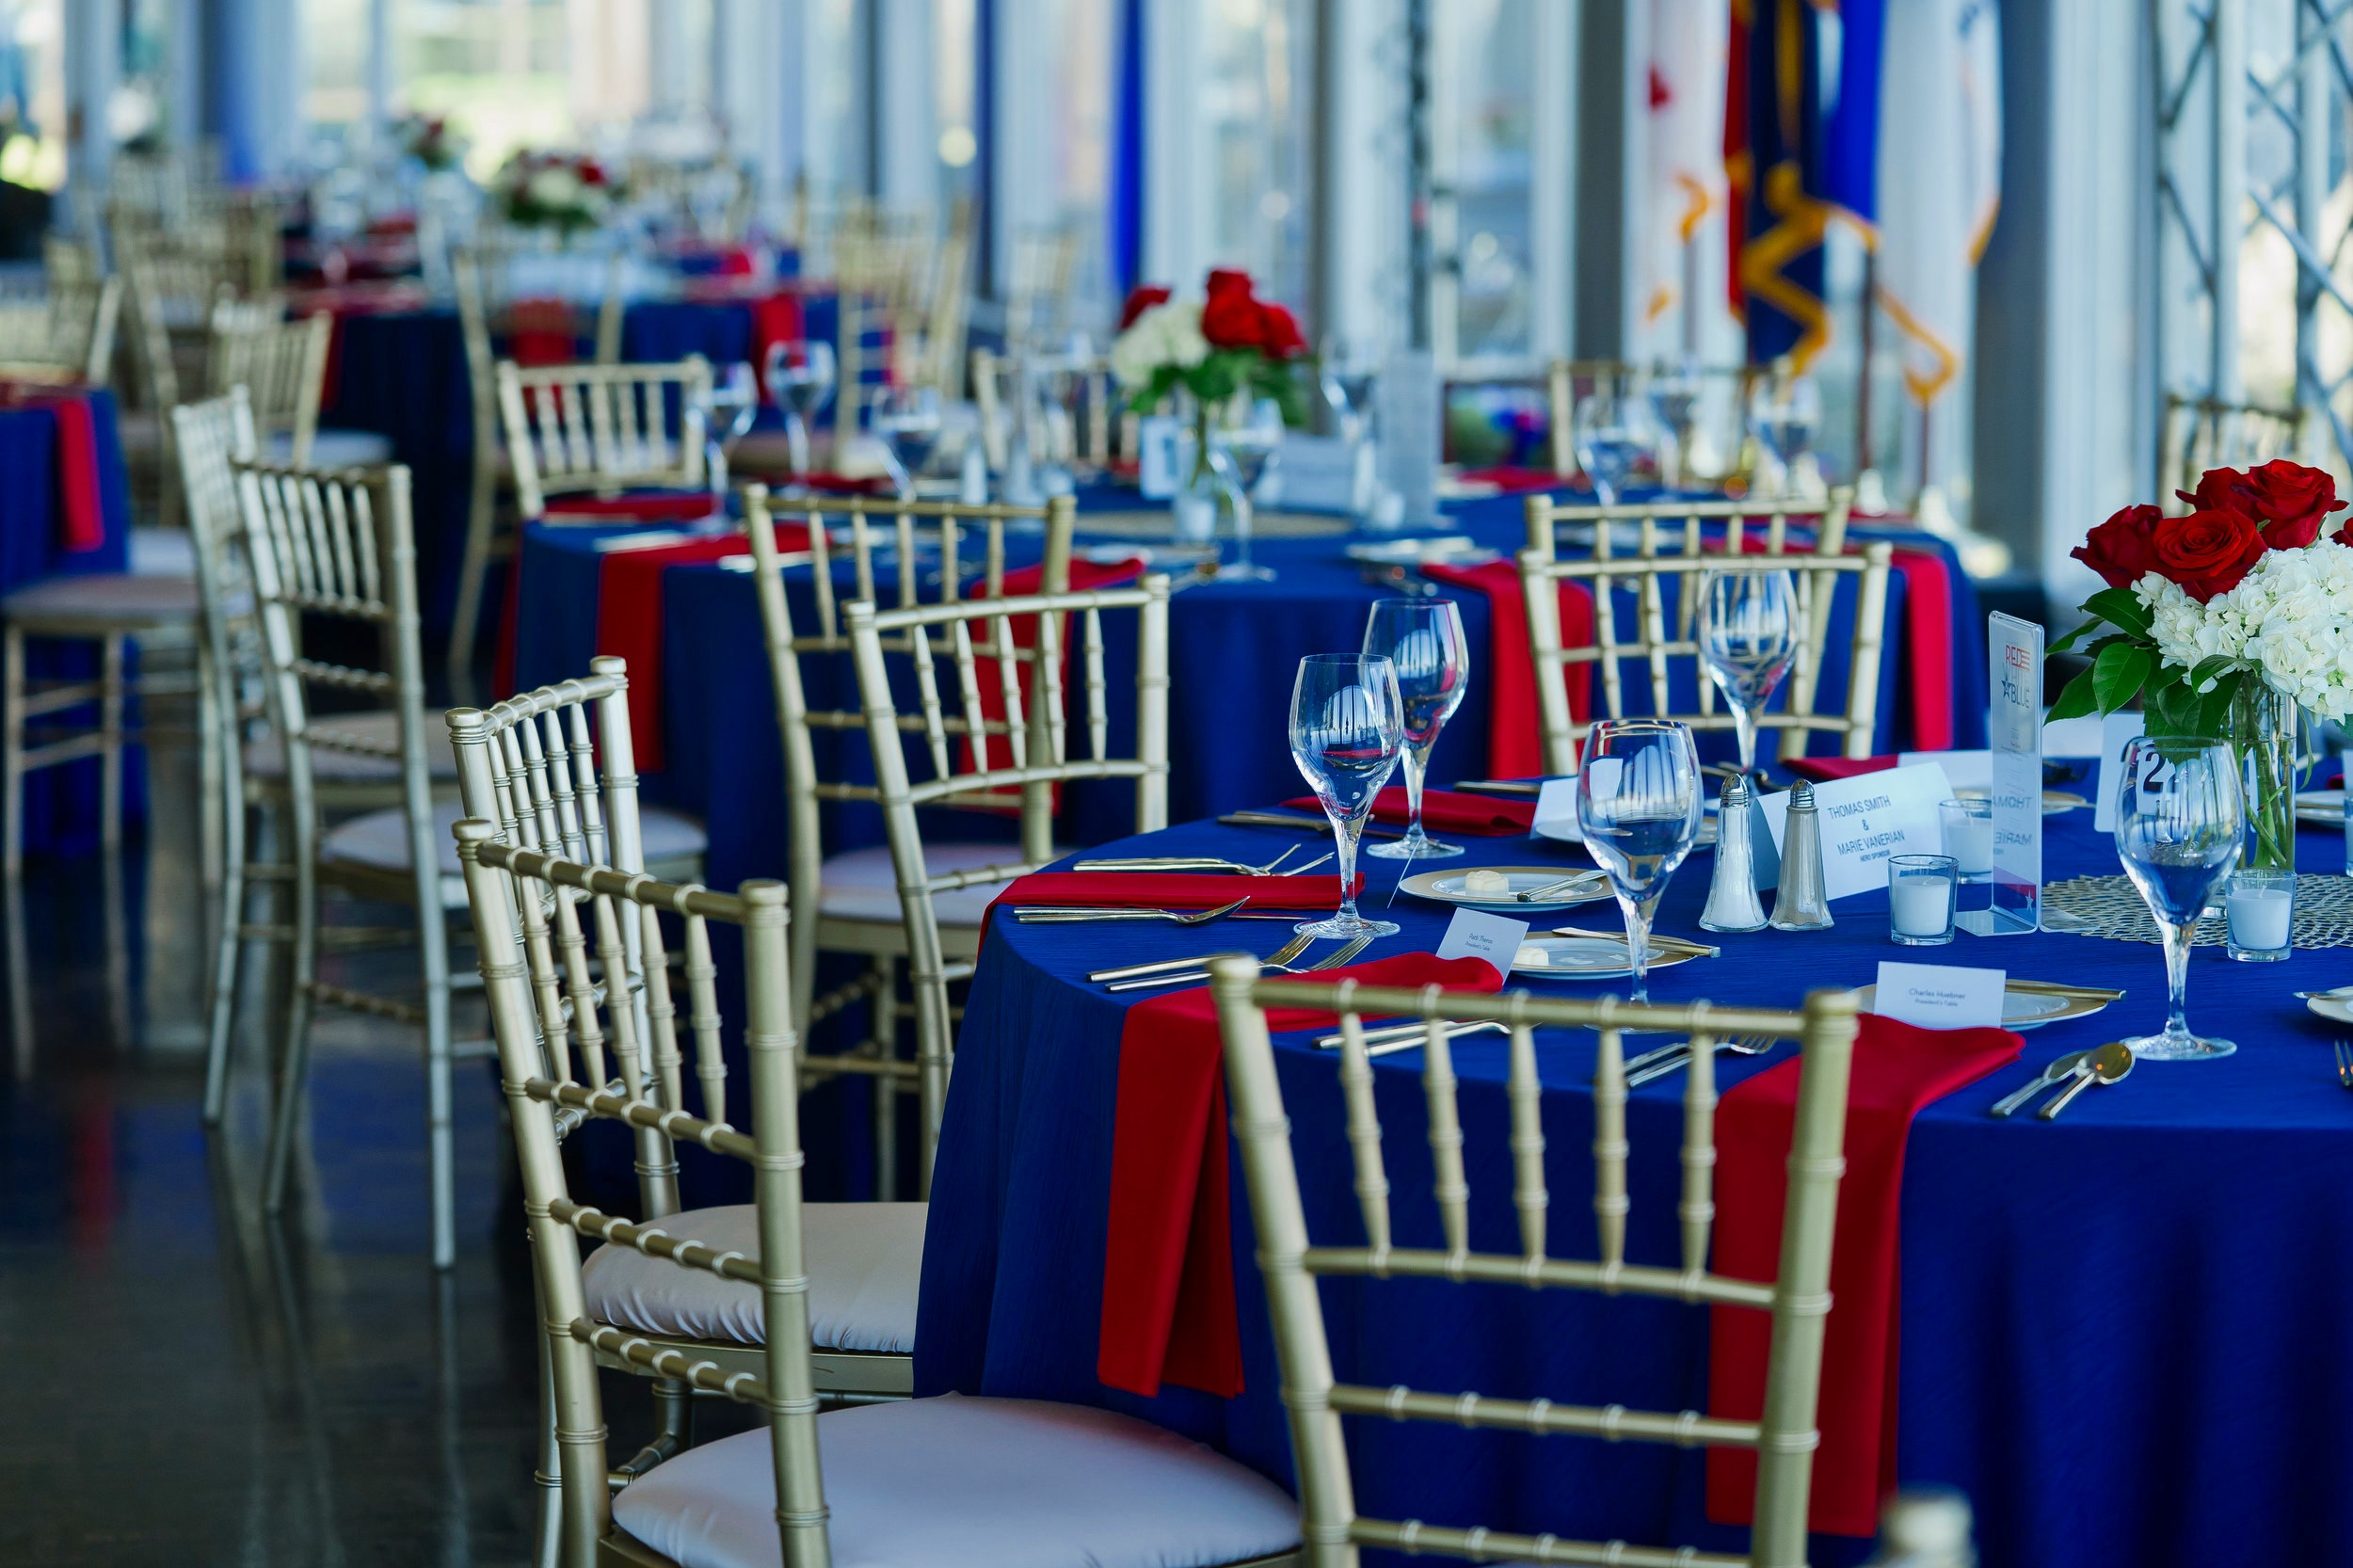 Attend our Annual Gala - Purchase your tickets for An Evening of Red, White, and Blue, held each year during Memorial Week.$200+